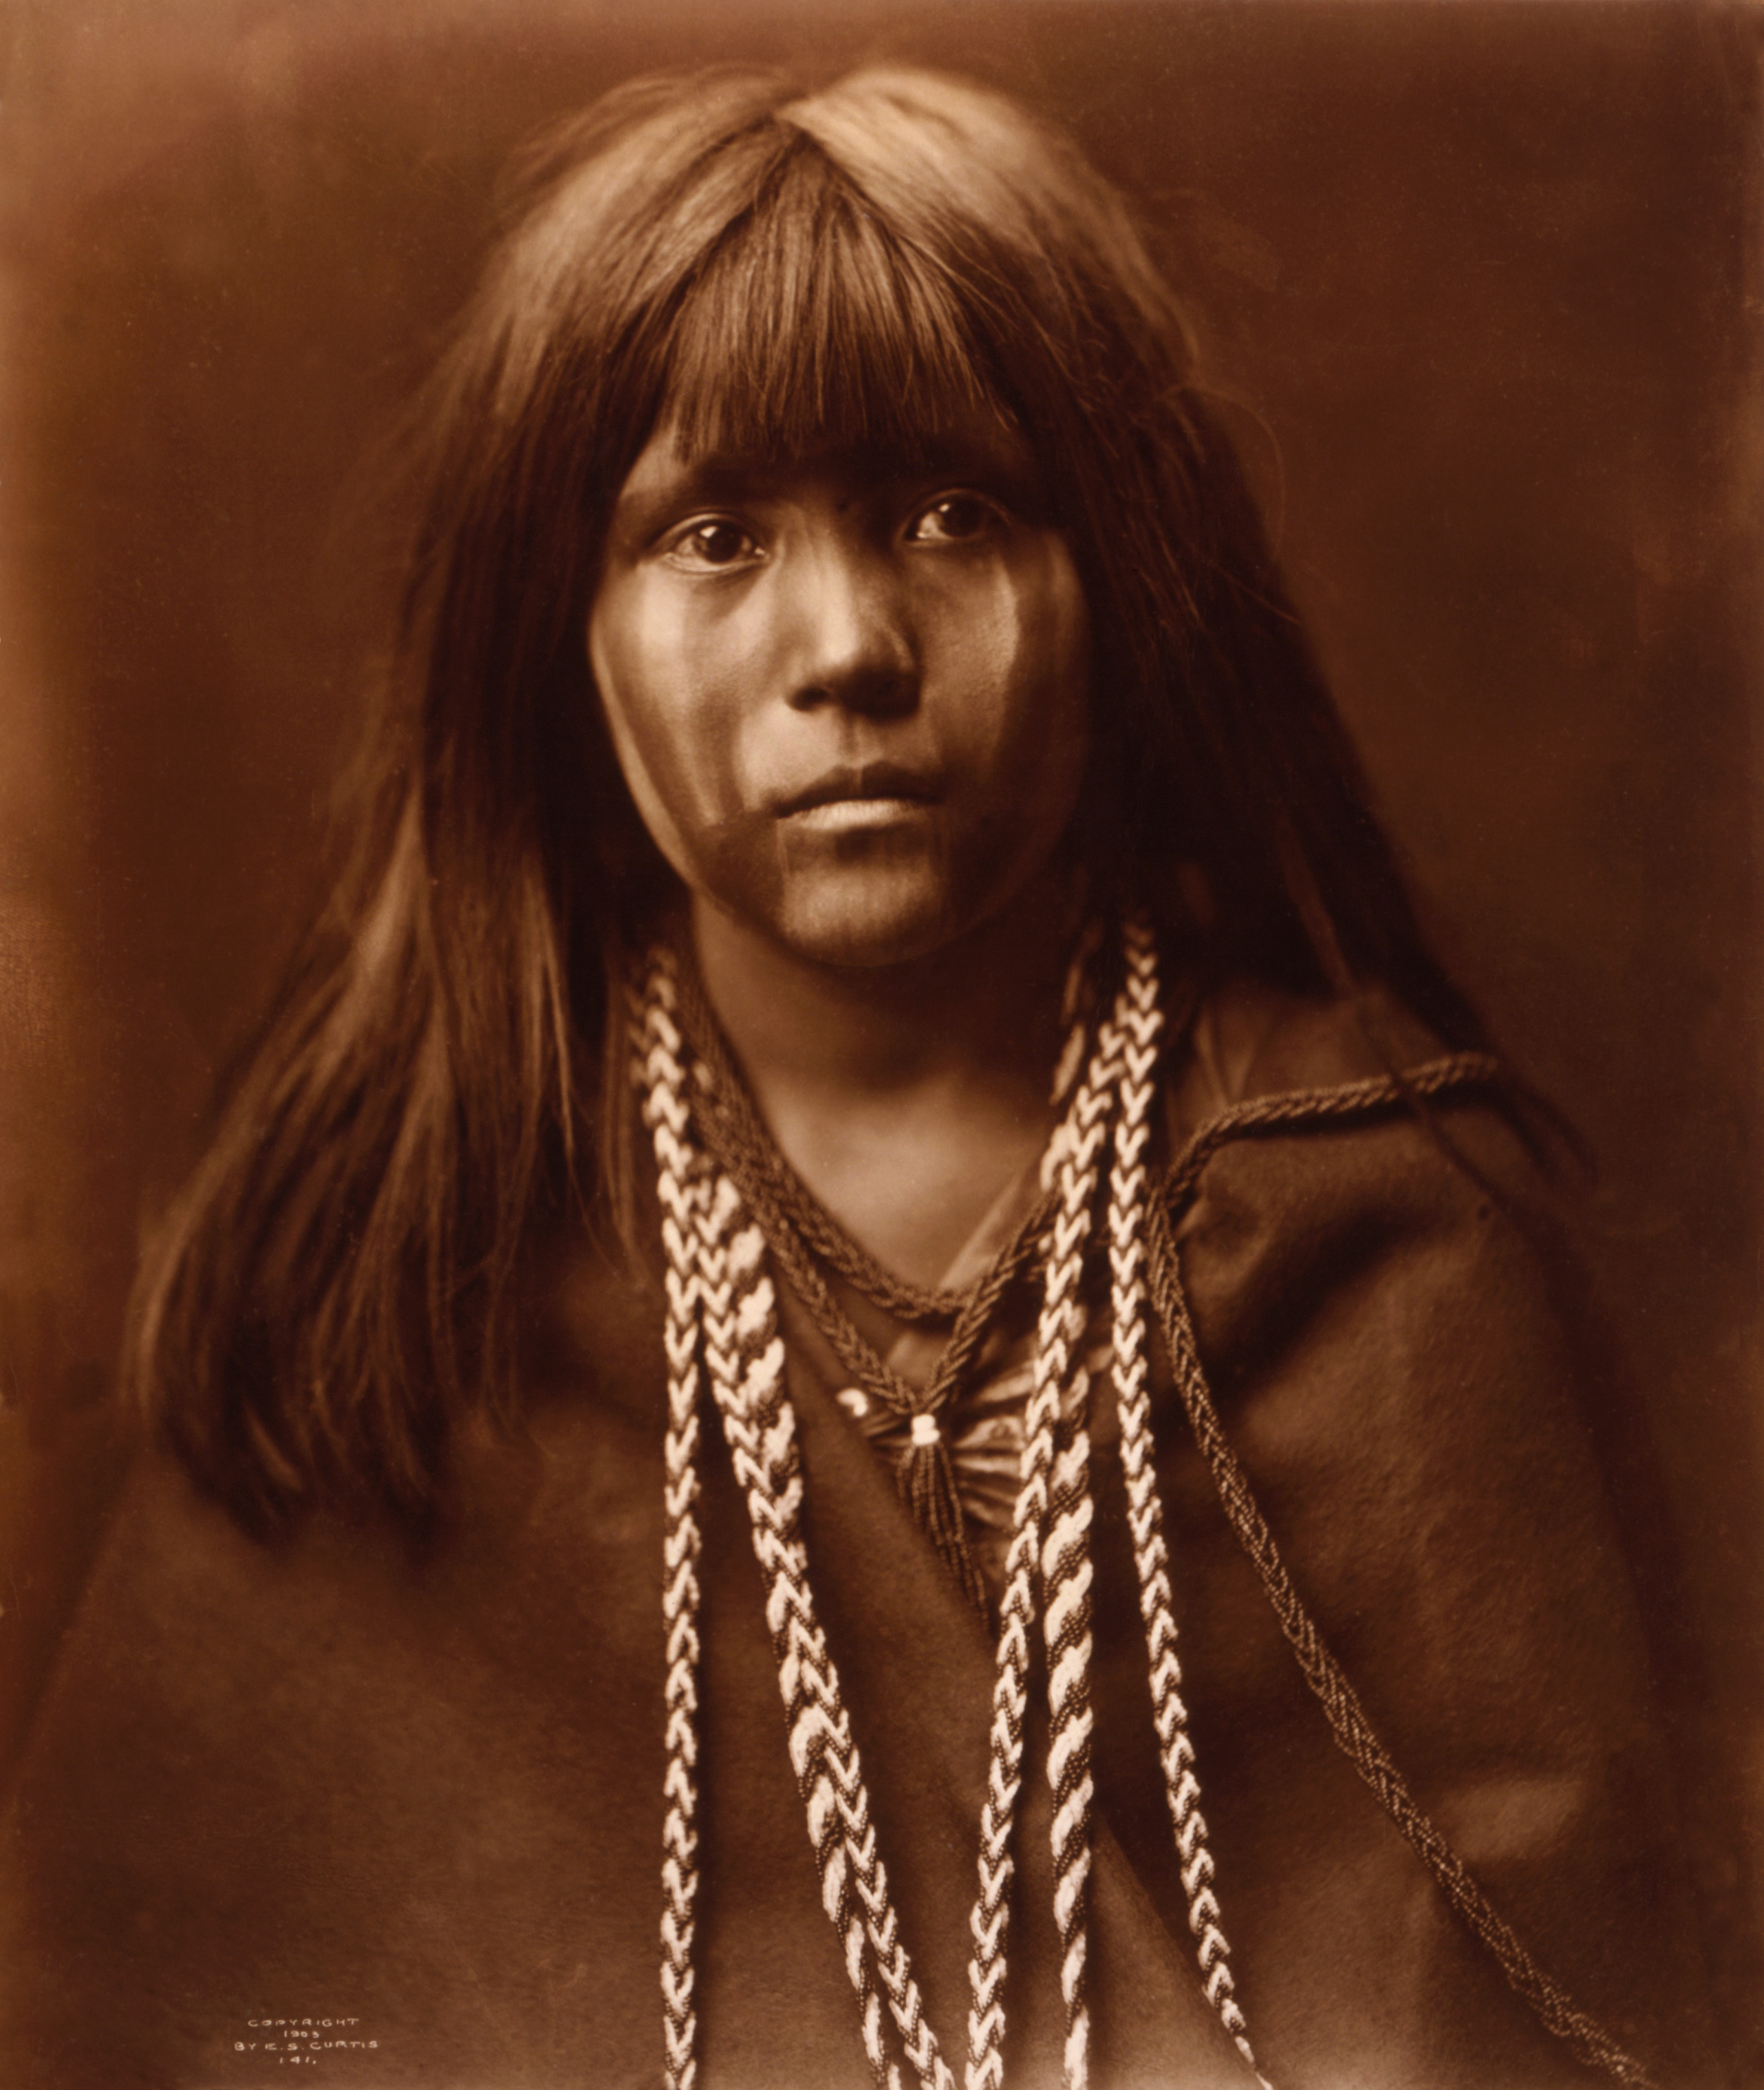 File:Mosa, Mohave girl, by Edward S. Curtis, 1903.jpg ...